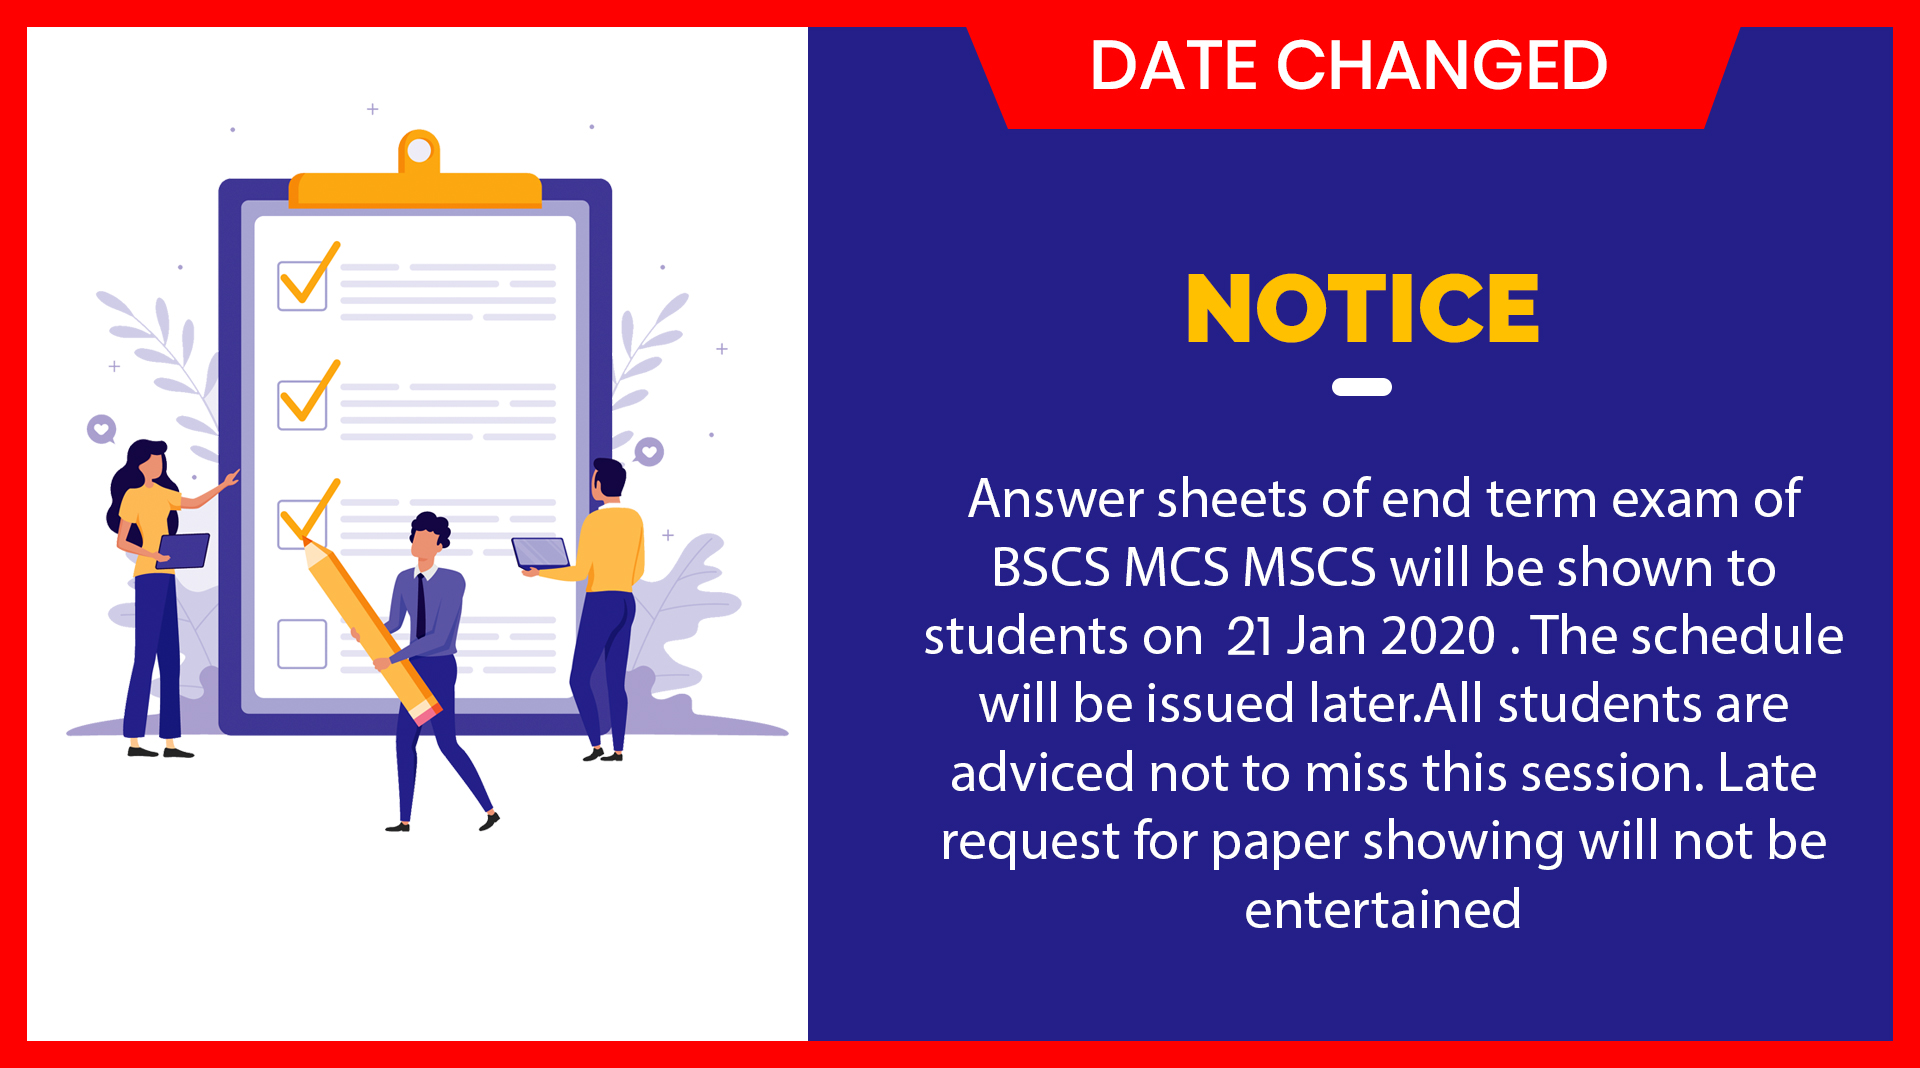 New Date for 'Showing' of 'Final Term Papers'